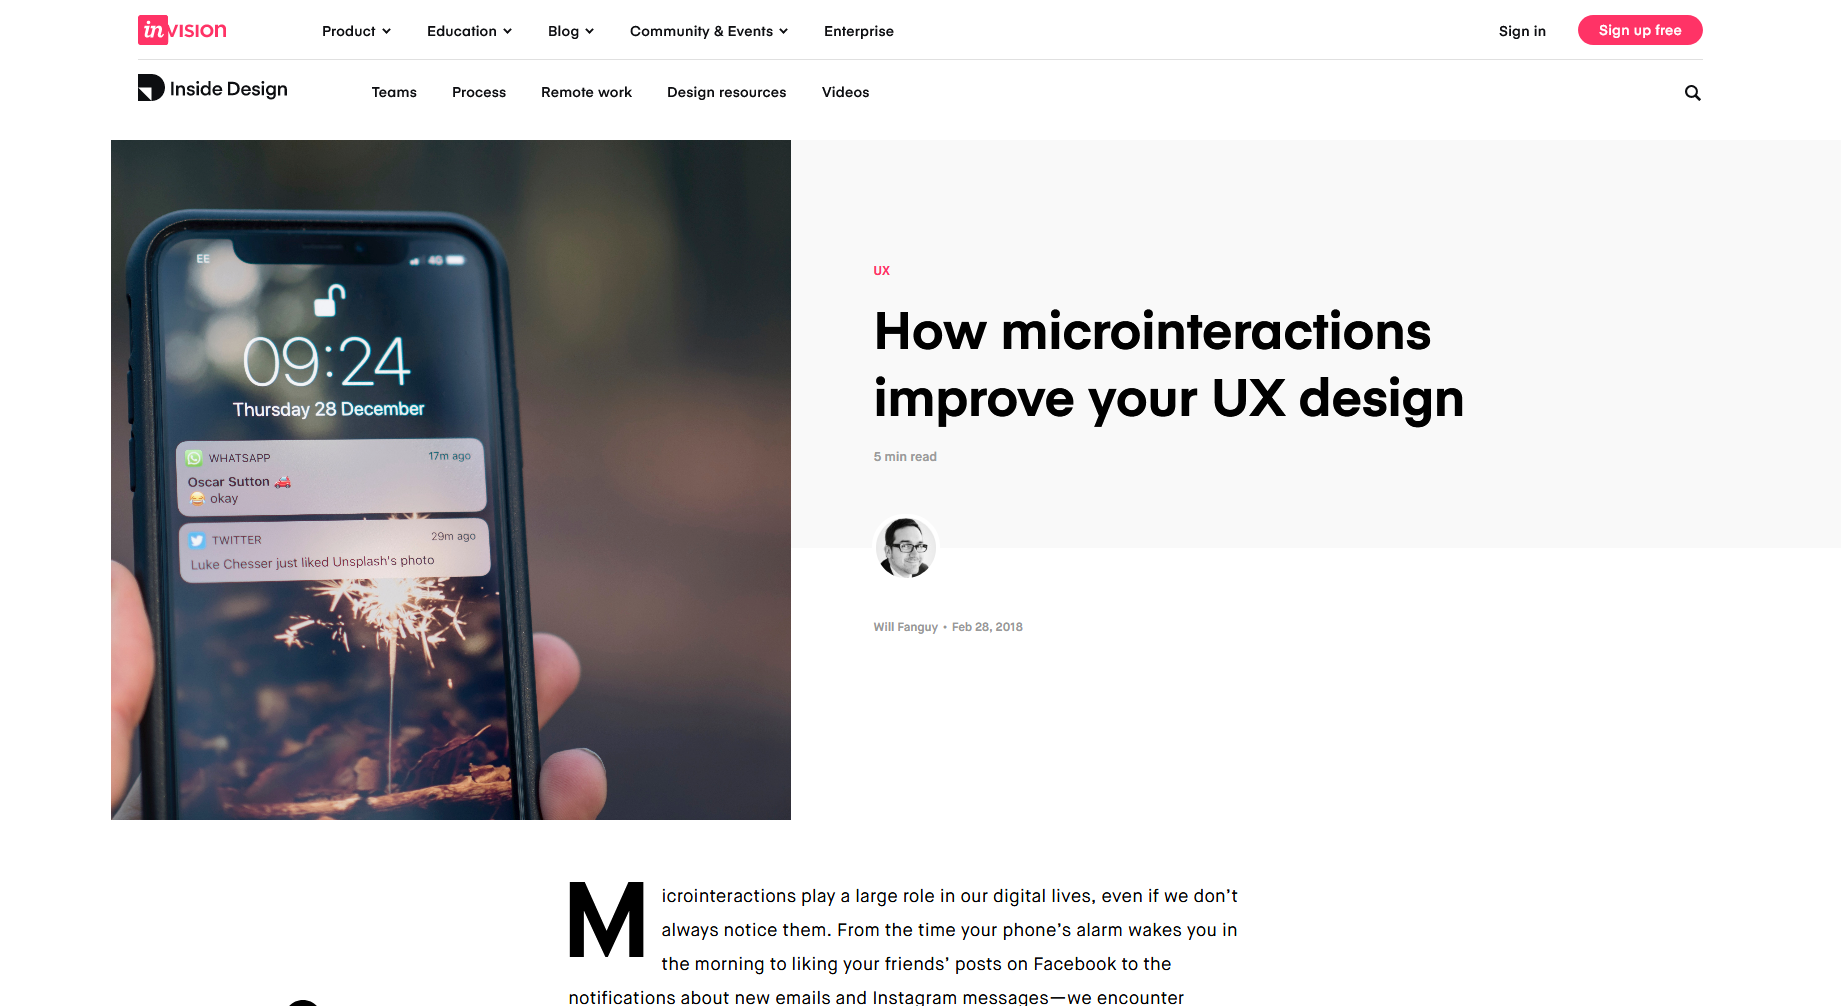 How Microinteractions Improve Your UX Design